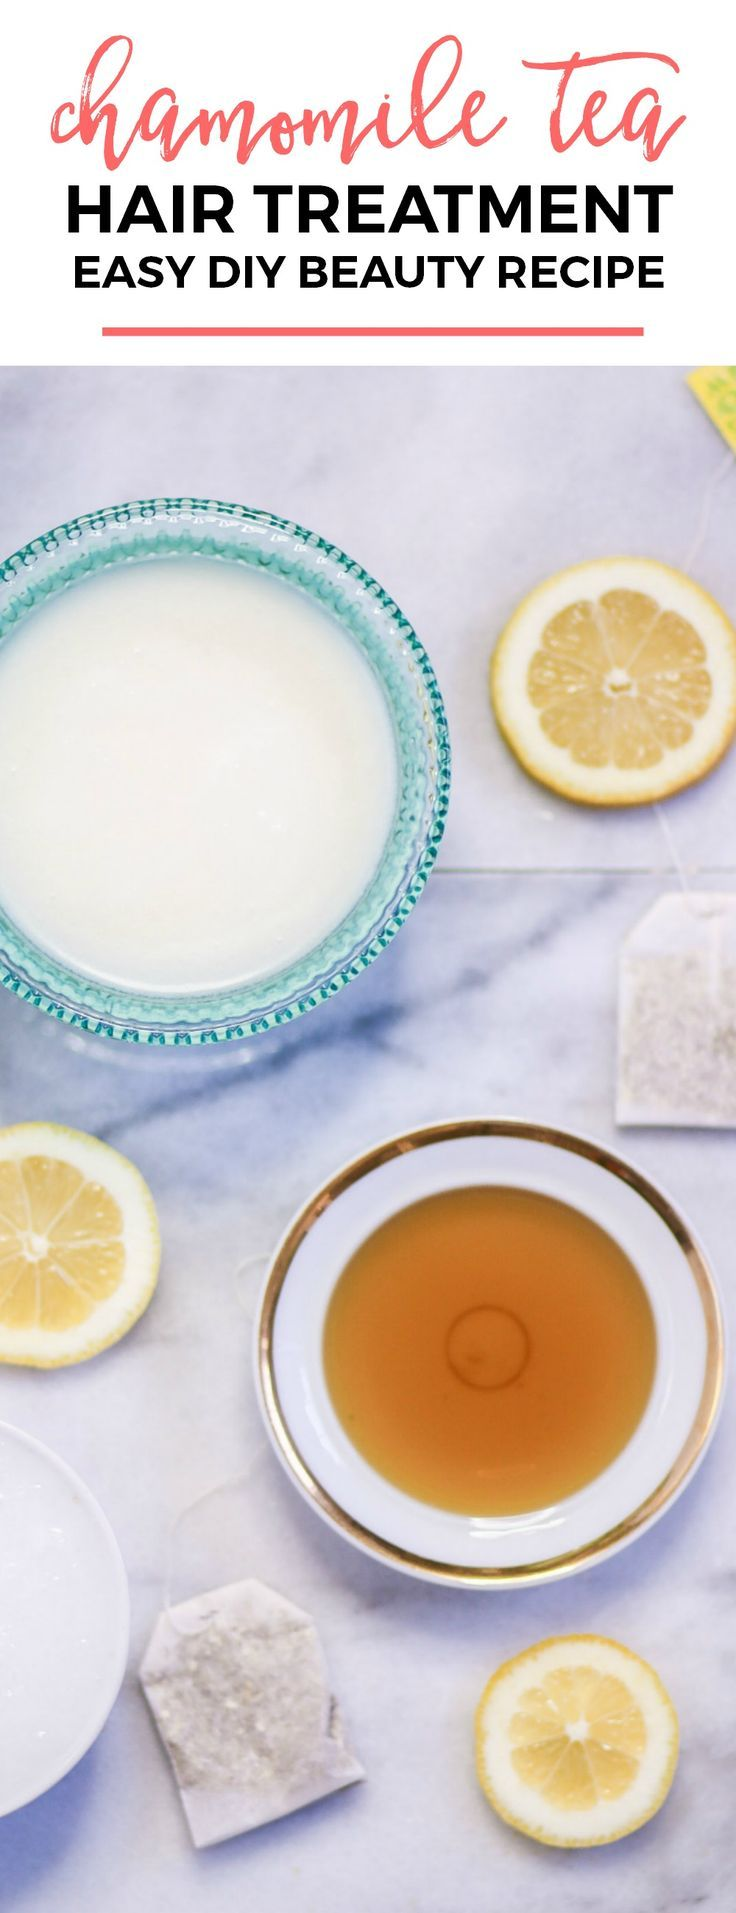 DIY chamomile tea hair treatment | Looking for an easy way to bring out your hai...